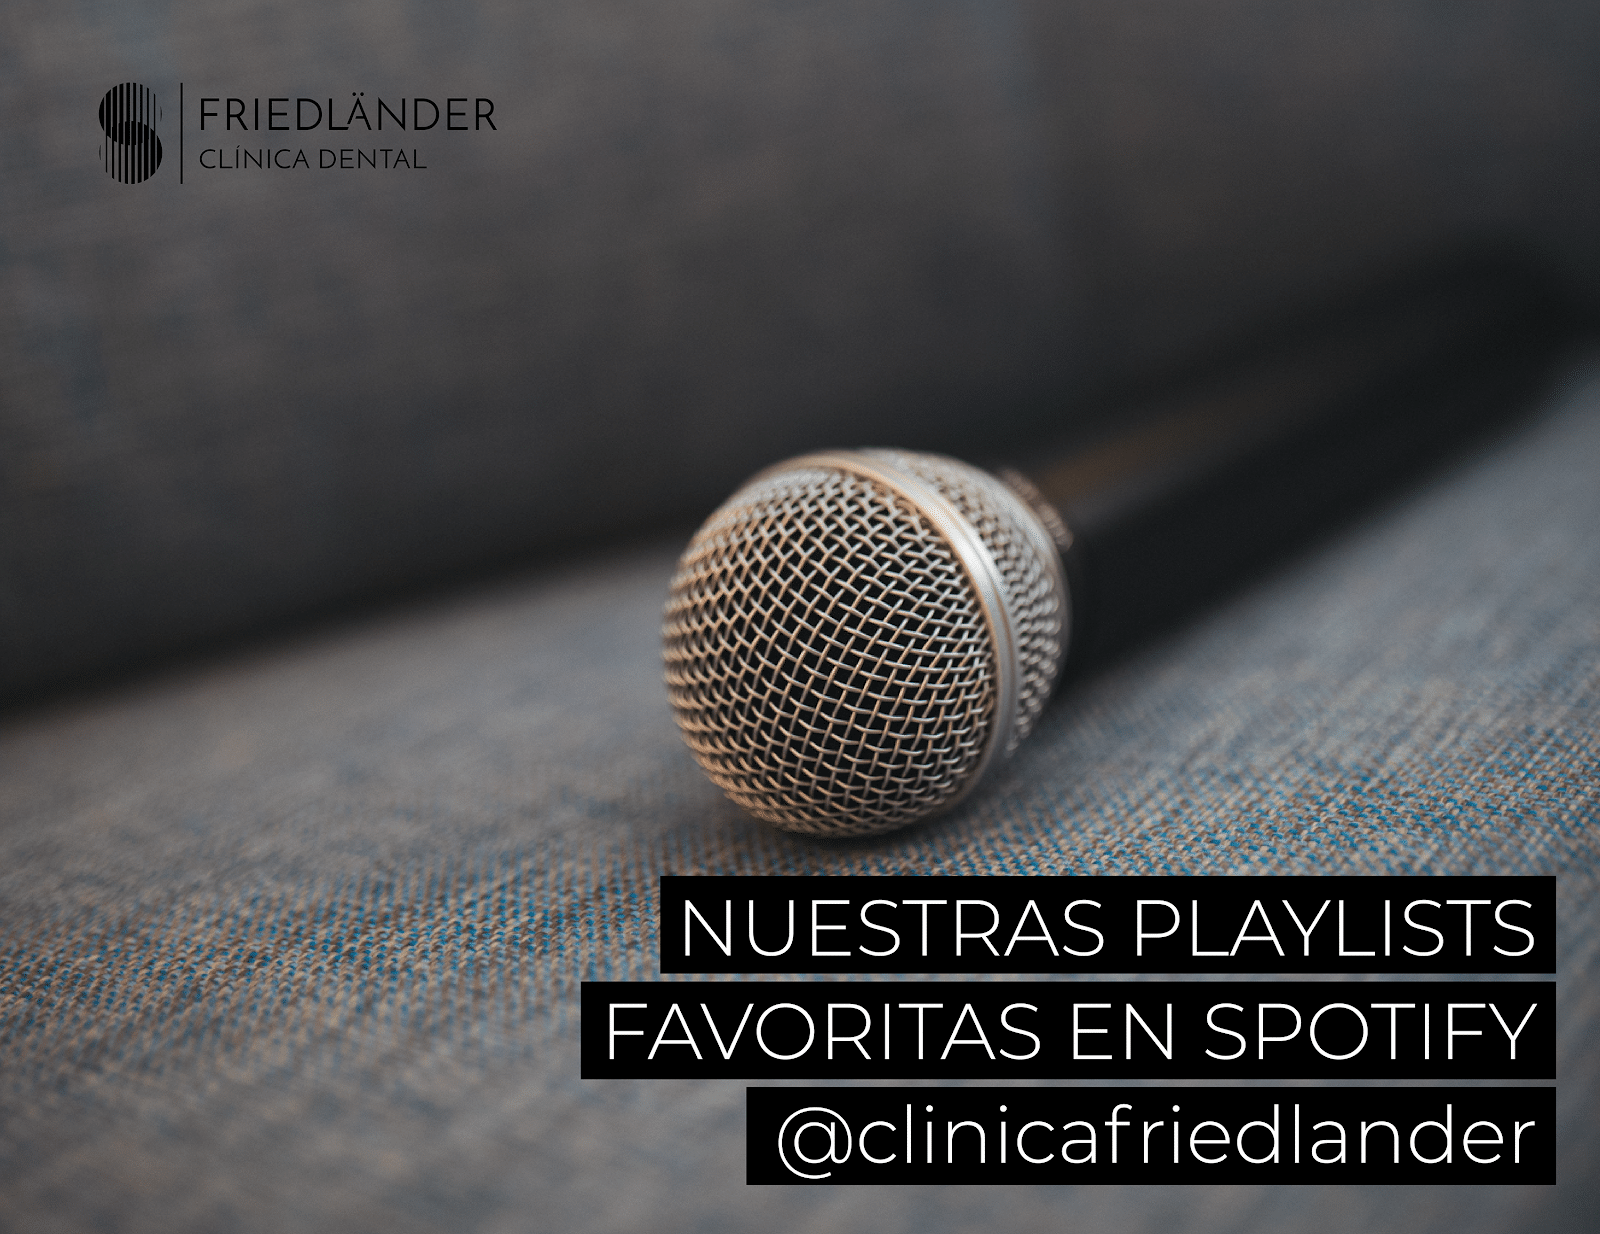 Nuestras PlayLists favoritas en Spotify  @clinicafriedlander 1